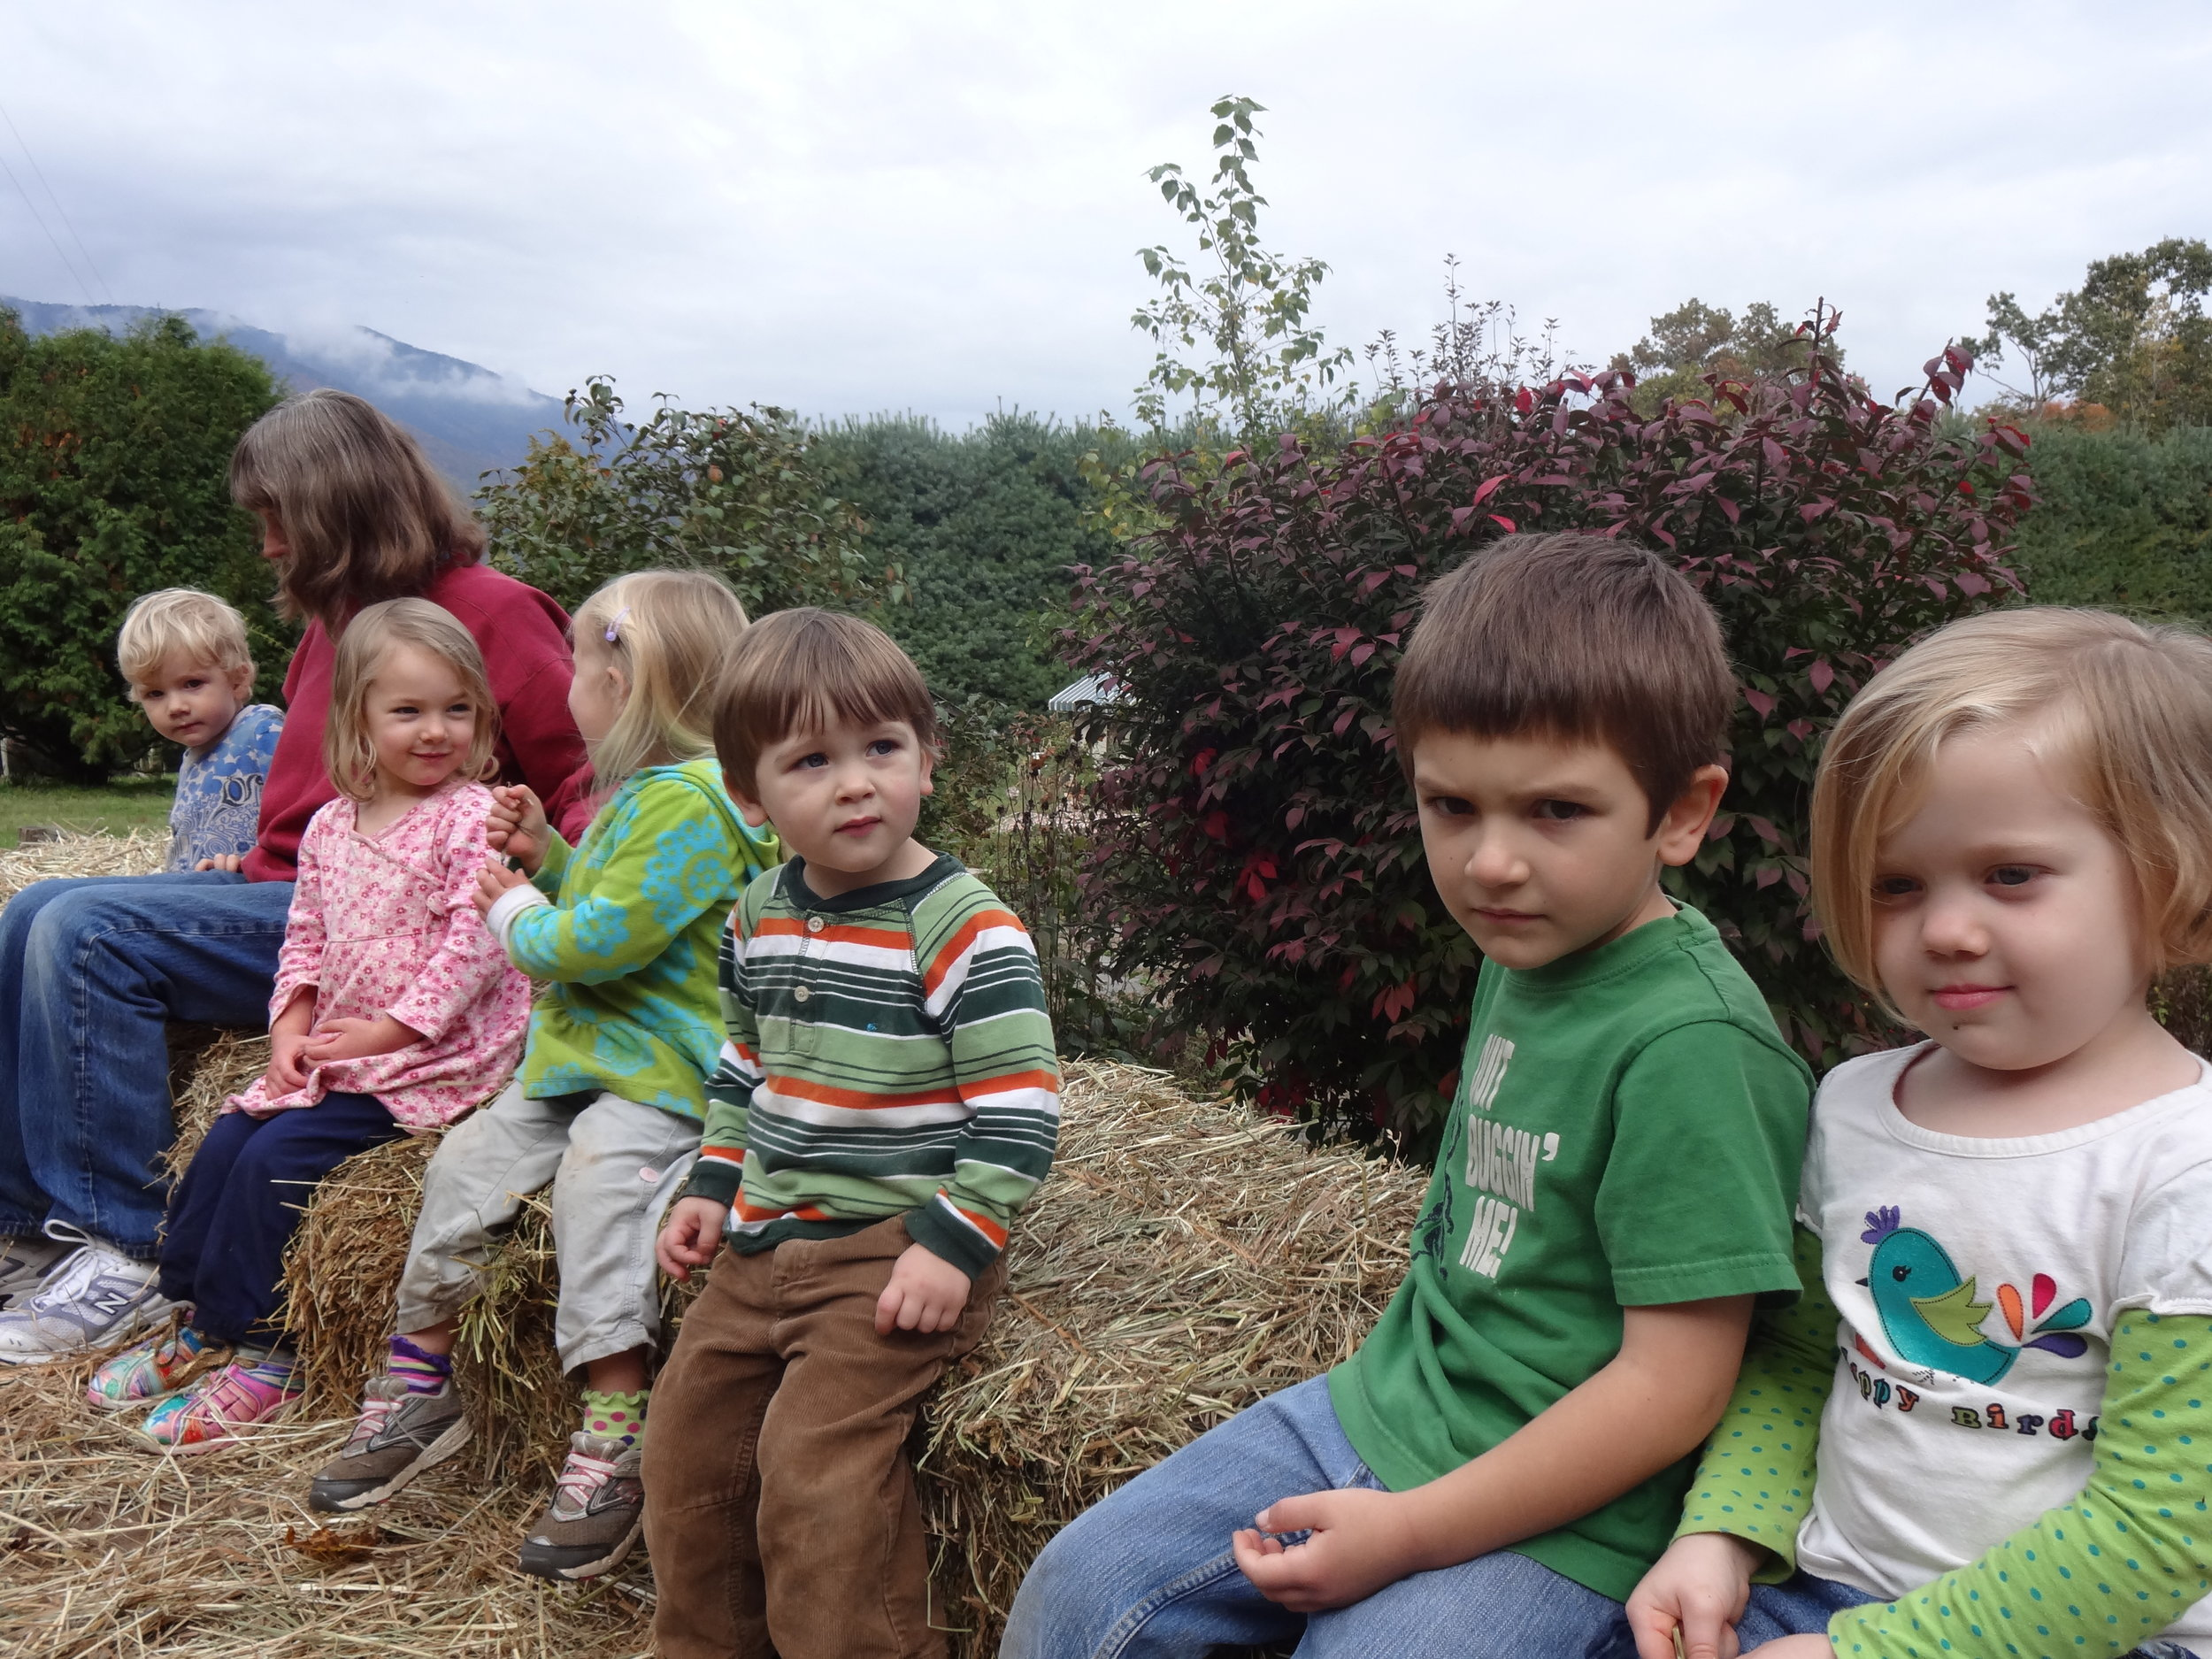 Here we go on the hayride!